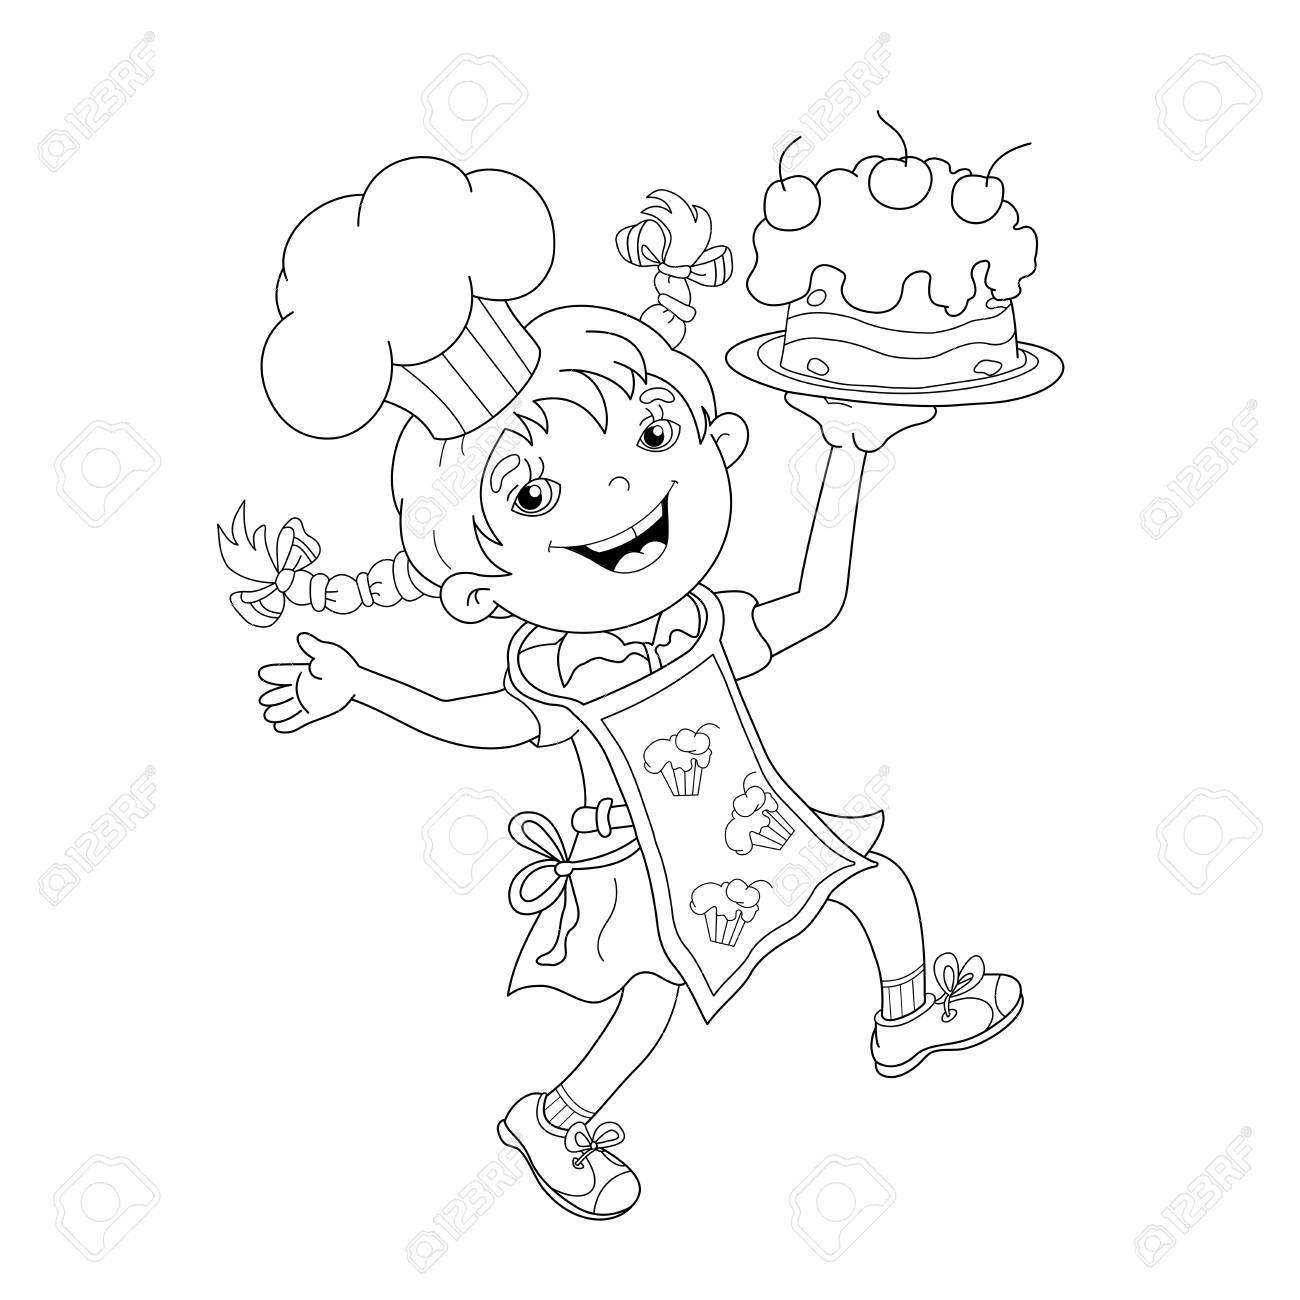 coloring page outline of cartoon chef with cake coloring